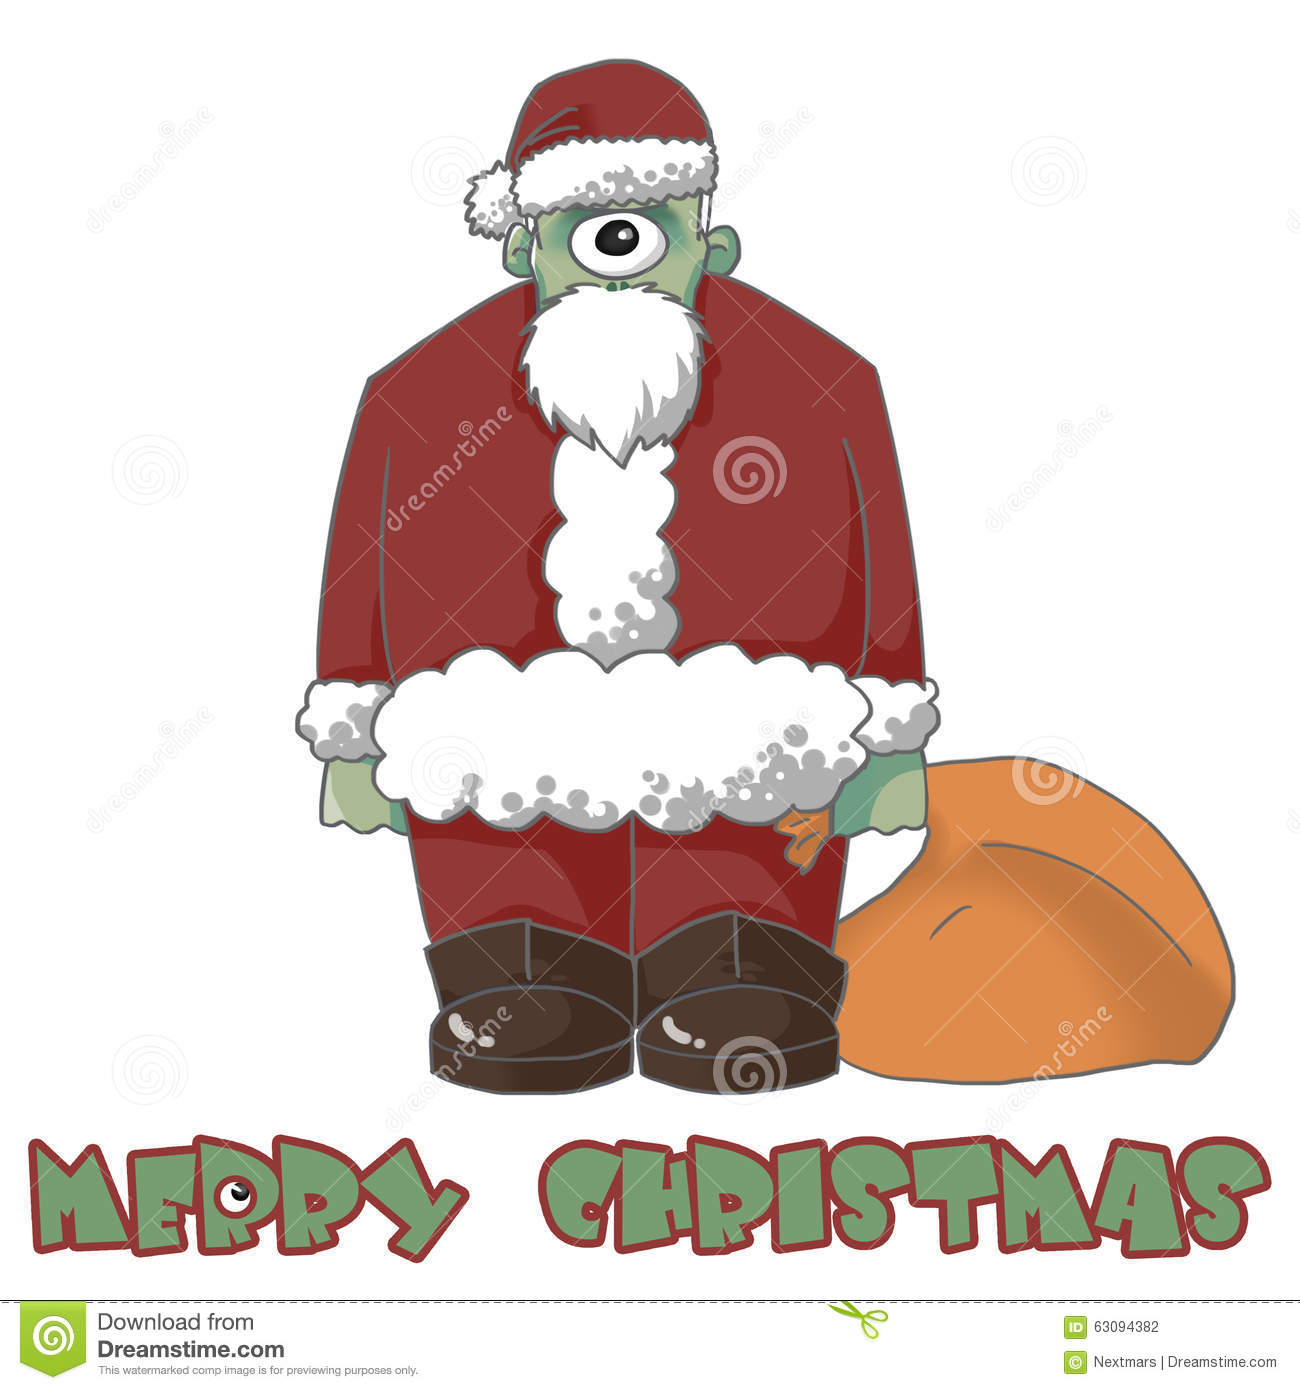 1 Eyed Cartoon Characters : Illustration the one eyed santa comes to wish you merry